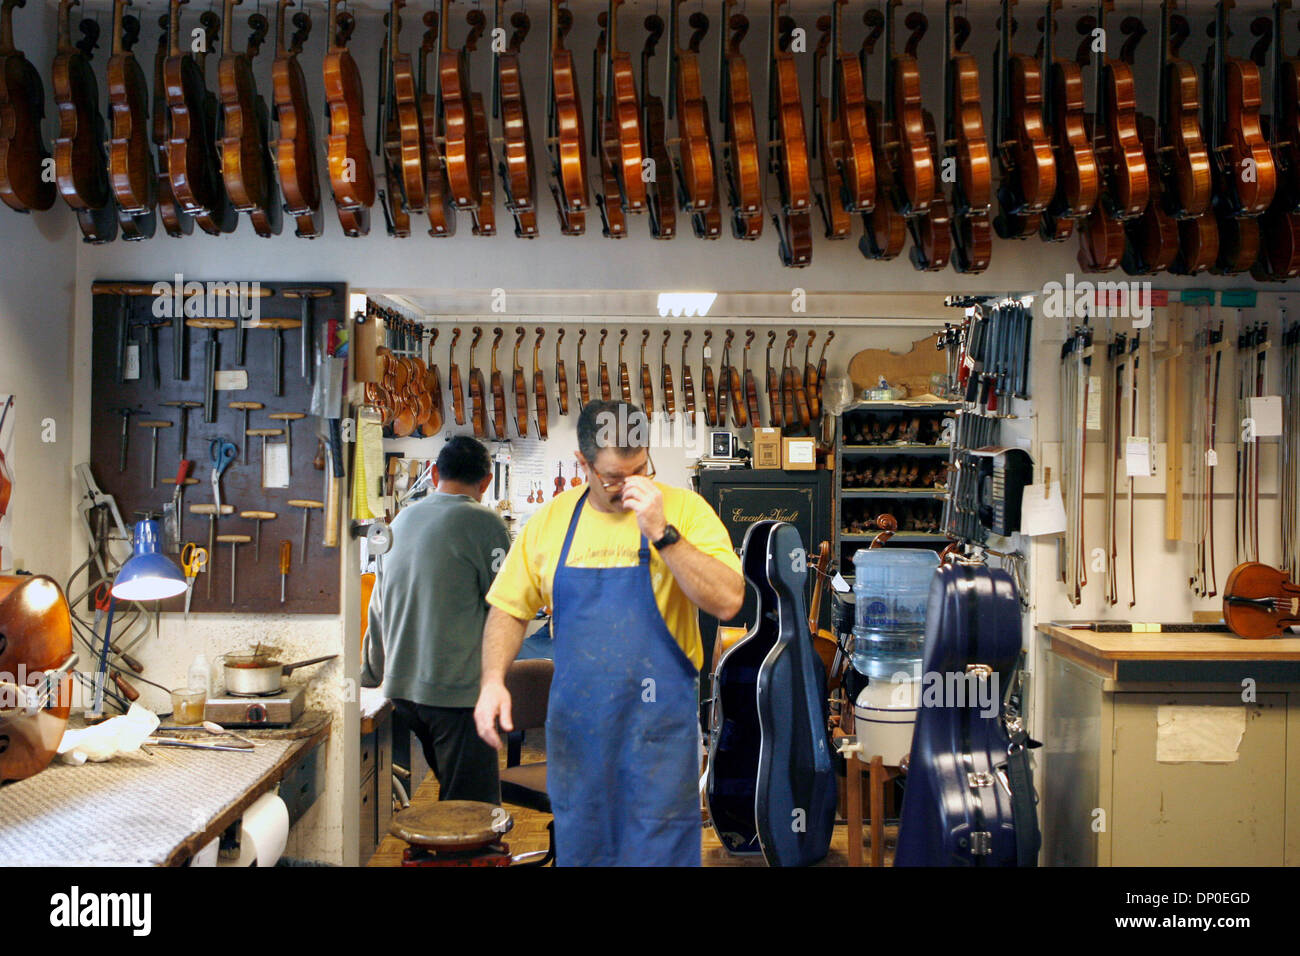 Mar 13, 2006; Berkeley, CA, USA; Tired of working for Caterpillar as a mechanic, and with an appreciation for violin music, Jay Ifshin spent three years at the violin-making school in Salt Lake City.  With schooling completed, Jay bought a small violin shop in Berkeley that had been in business since the 1930's. At that time, there were only two part-time employees serving mostly l - Stock Image